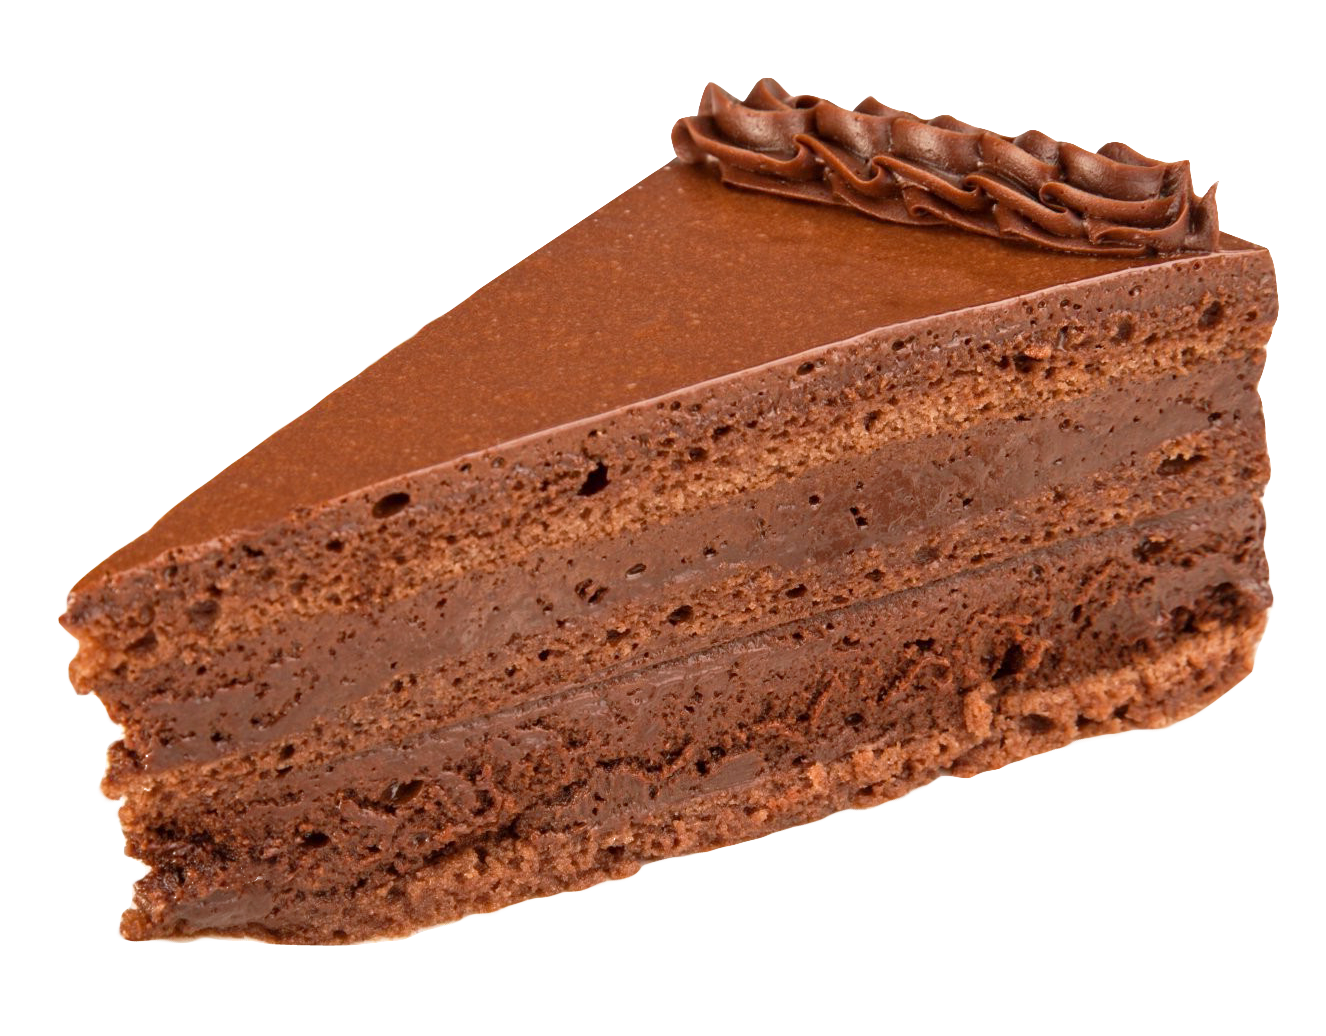 Cake slice png. Of transparent images pluspng